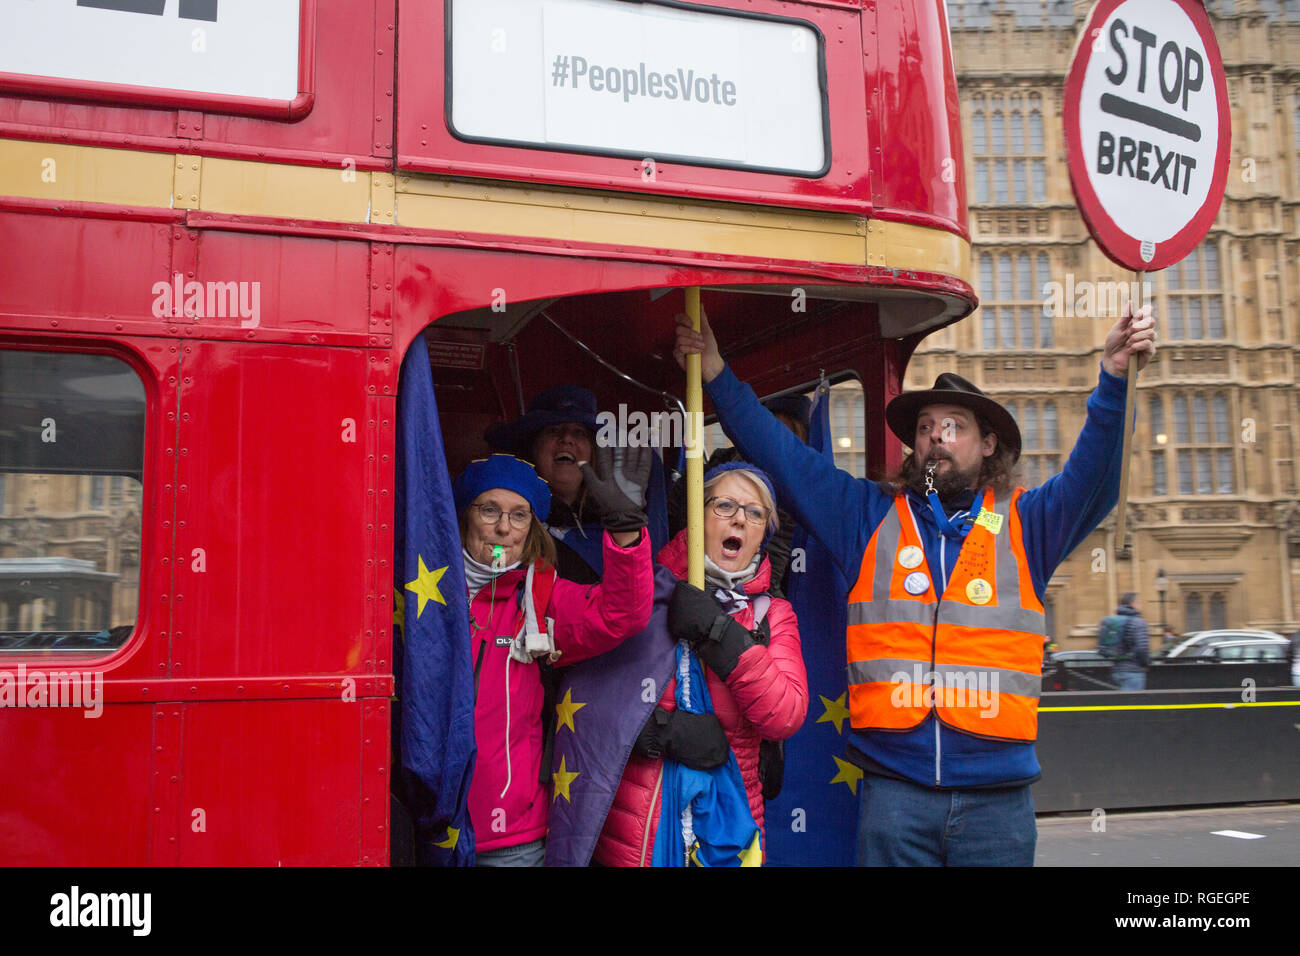 London UK 29th Jan 2019 Pro-EU protesters demonstrate on a bus near the Houses of Parliament on the day MPs vote on EU withdrawal deal amendments. Credit: Thabo Jaiyesimi/Alamy Live News Stock Photo